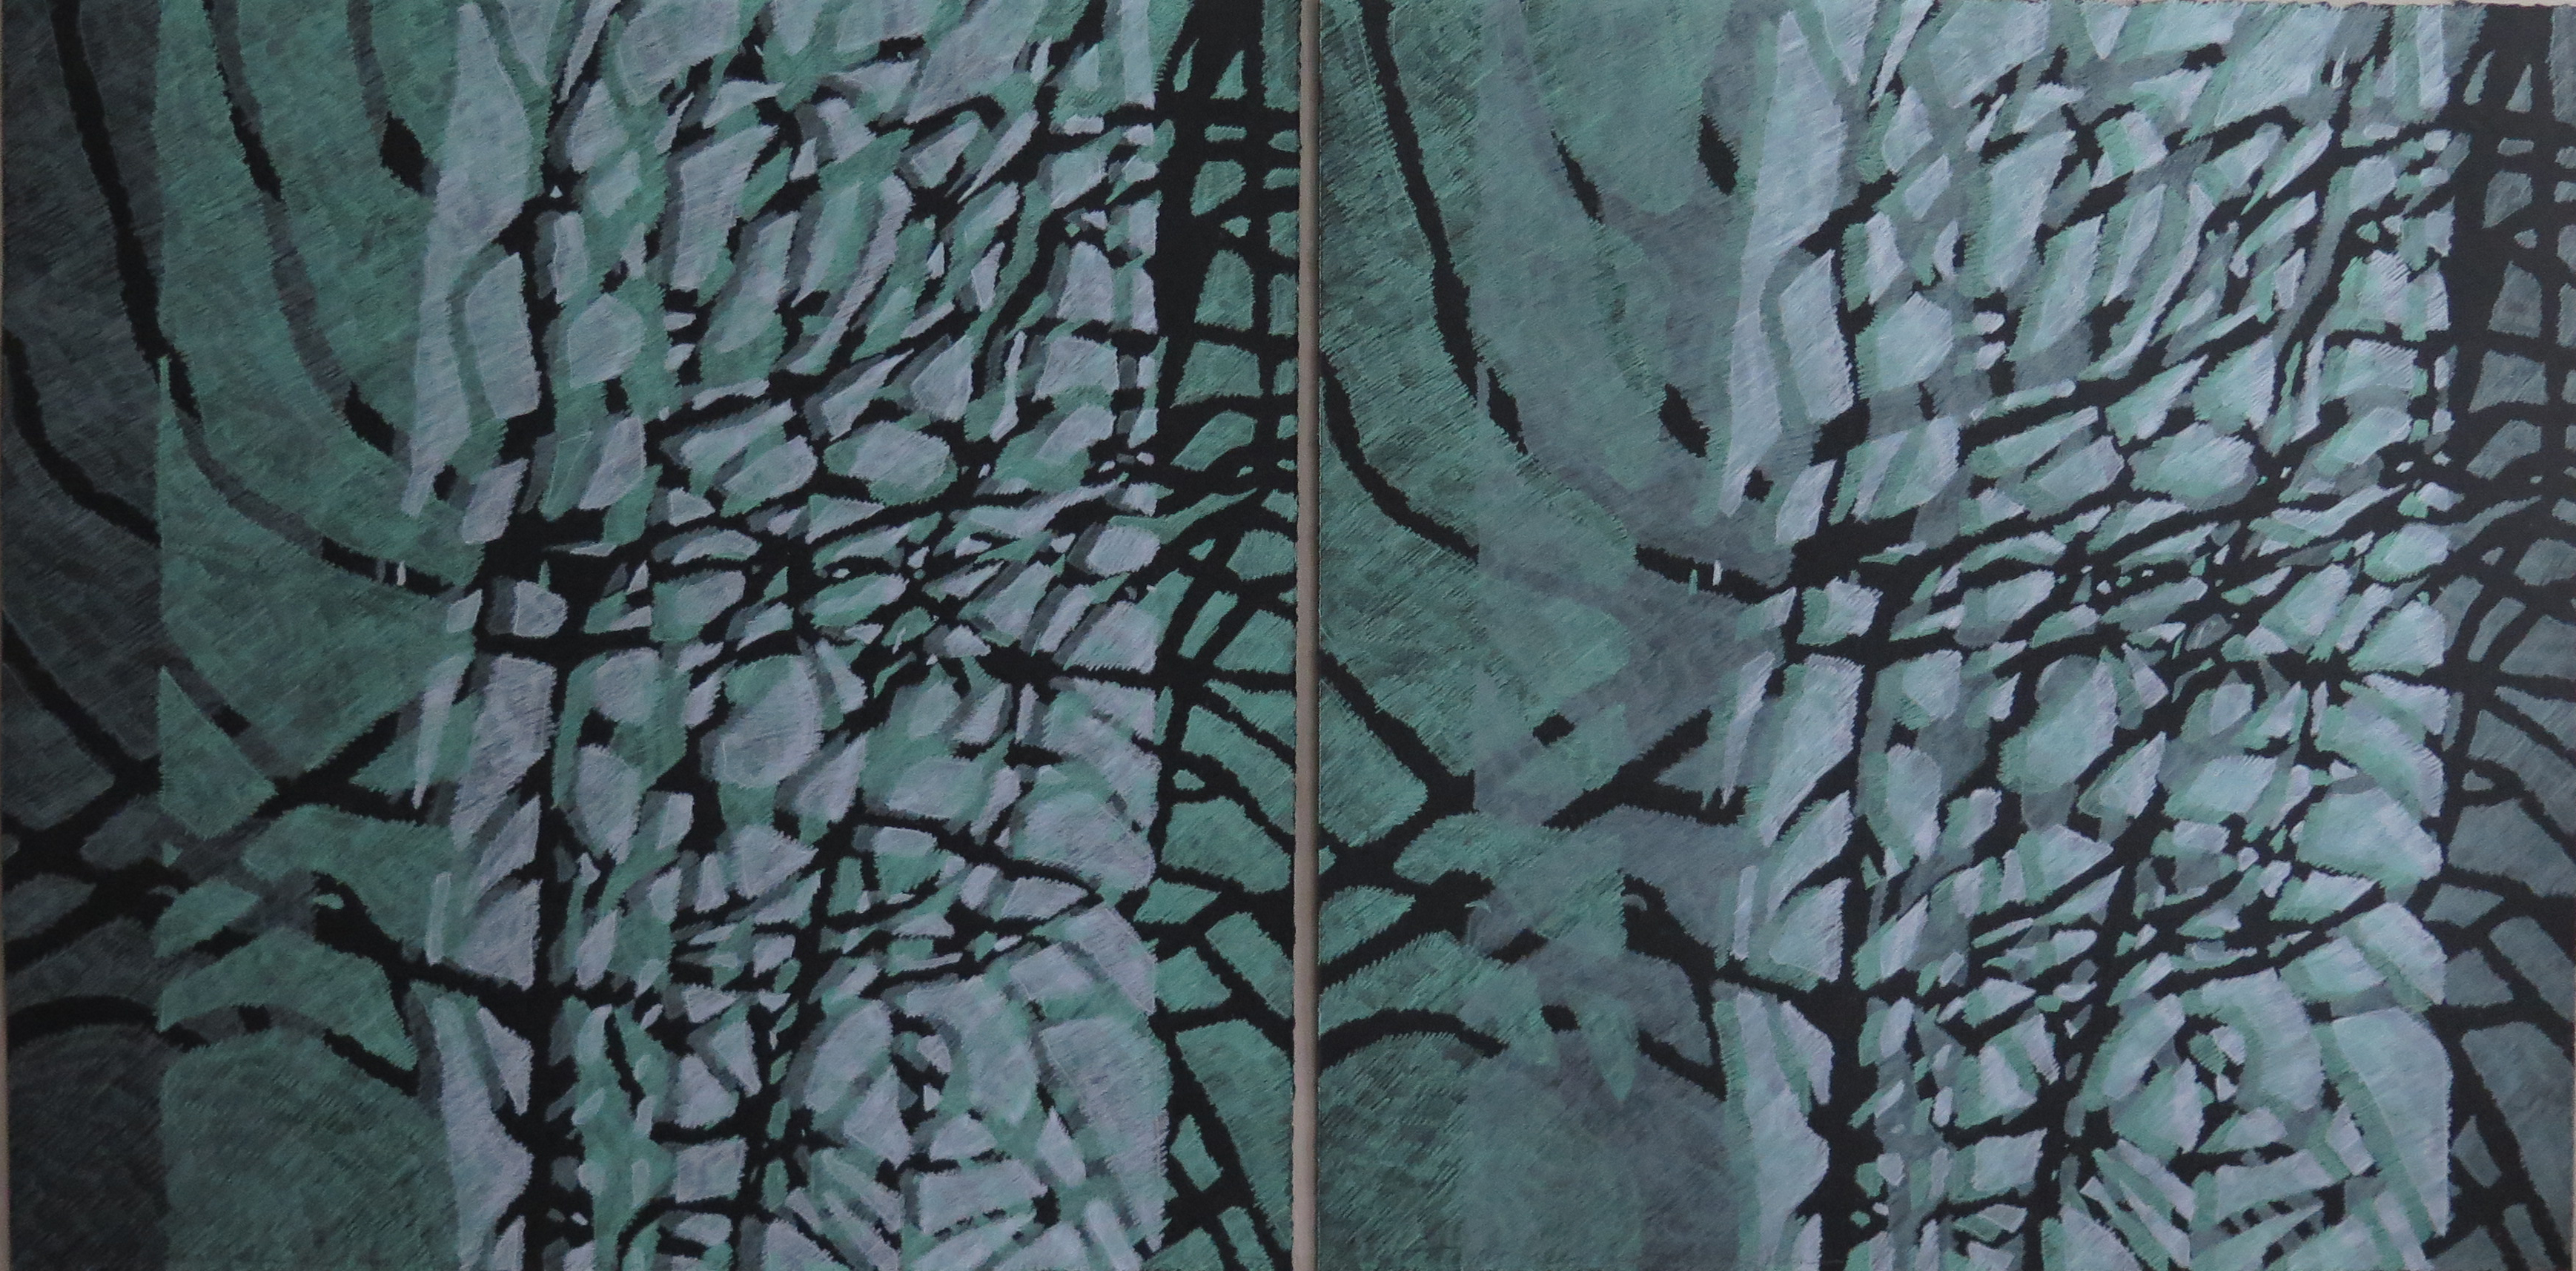 Lyn Horton Shift Series, 2019-20, celadon green and light green and light green and celadon green pair, 2020, 22.25 in h x 45 in w, colored pencil on black rag paper